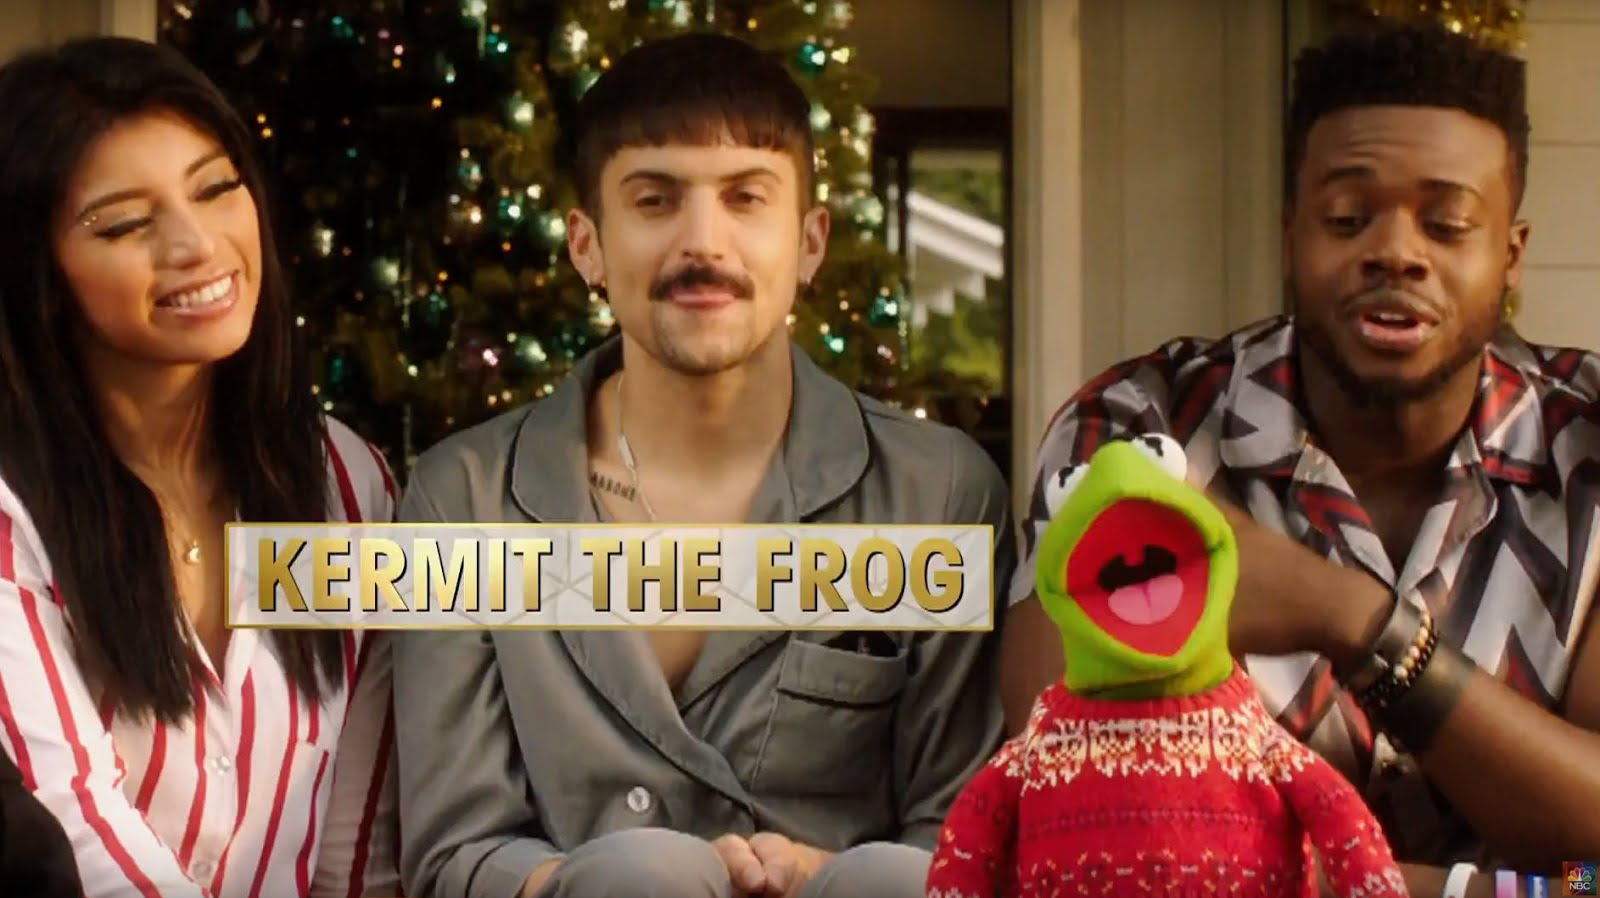 pentatonix the grammy winning a cappella group has a new christmas special and our favorite frog is joining the fun - Penatonix Christmas